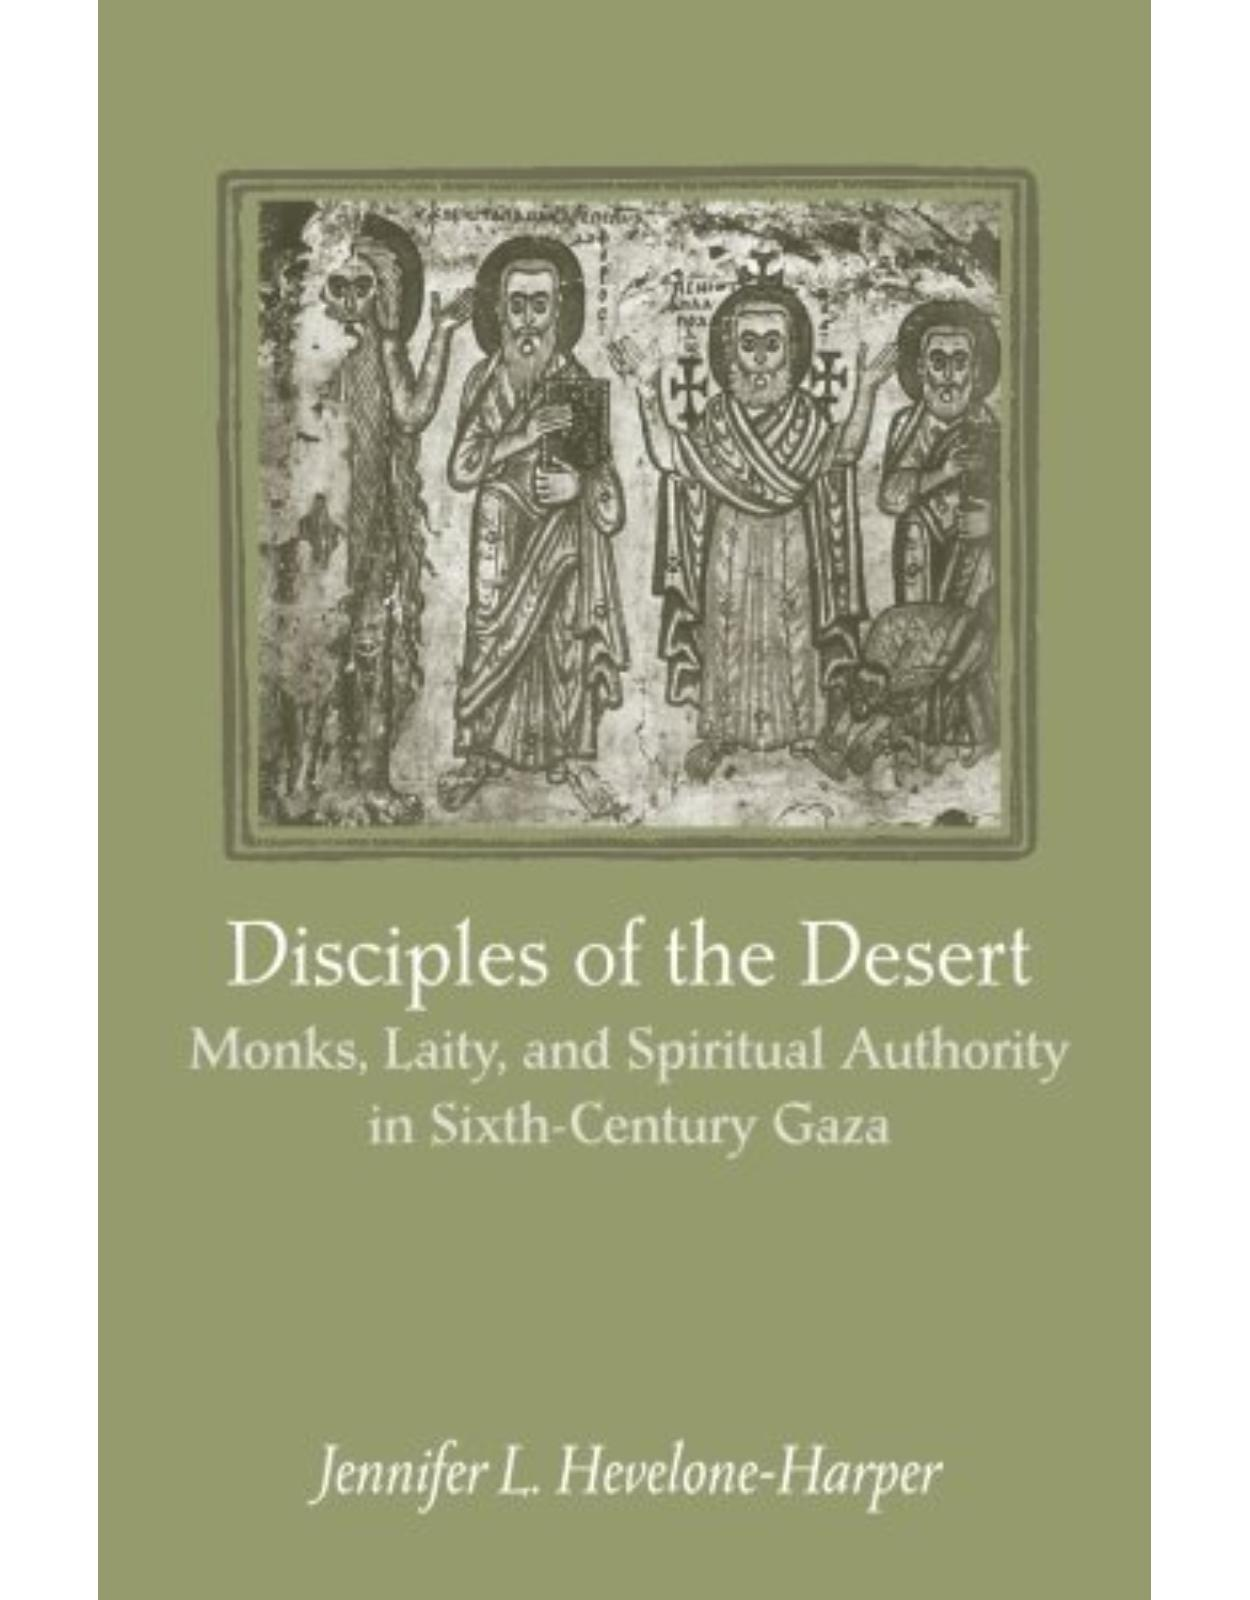 Disciples of the Desert, Monks, Laity, and Spiritual Authority in Sixth-Century Gaza